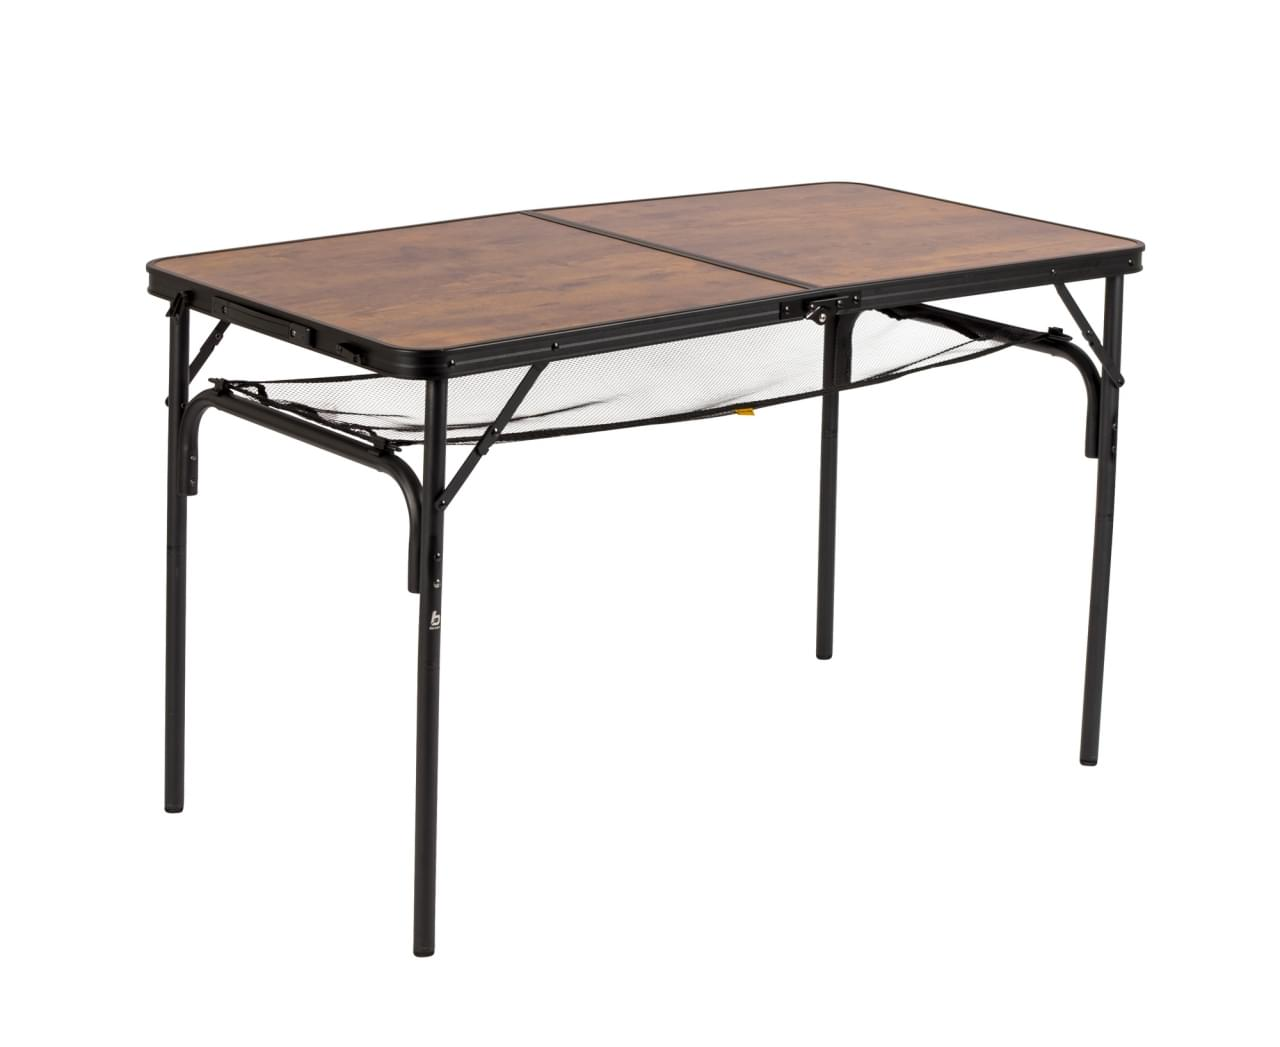 Bo-Camp Industrial Green 120 x 60 cm Campingtafel